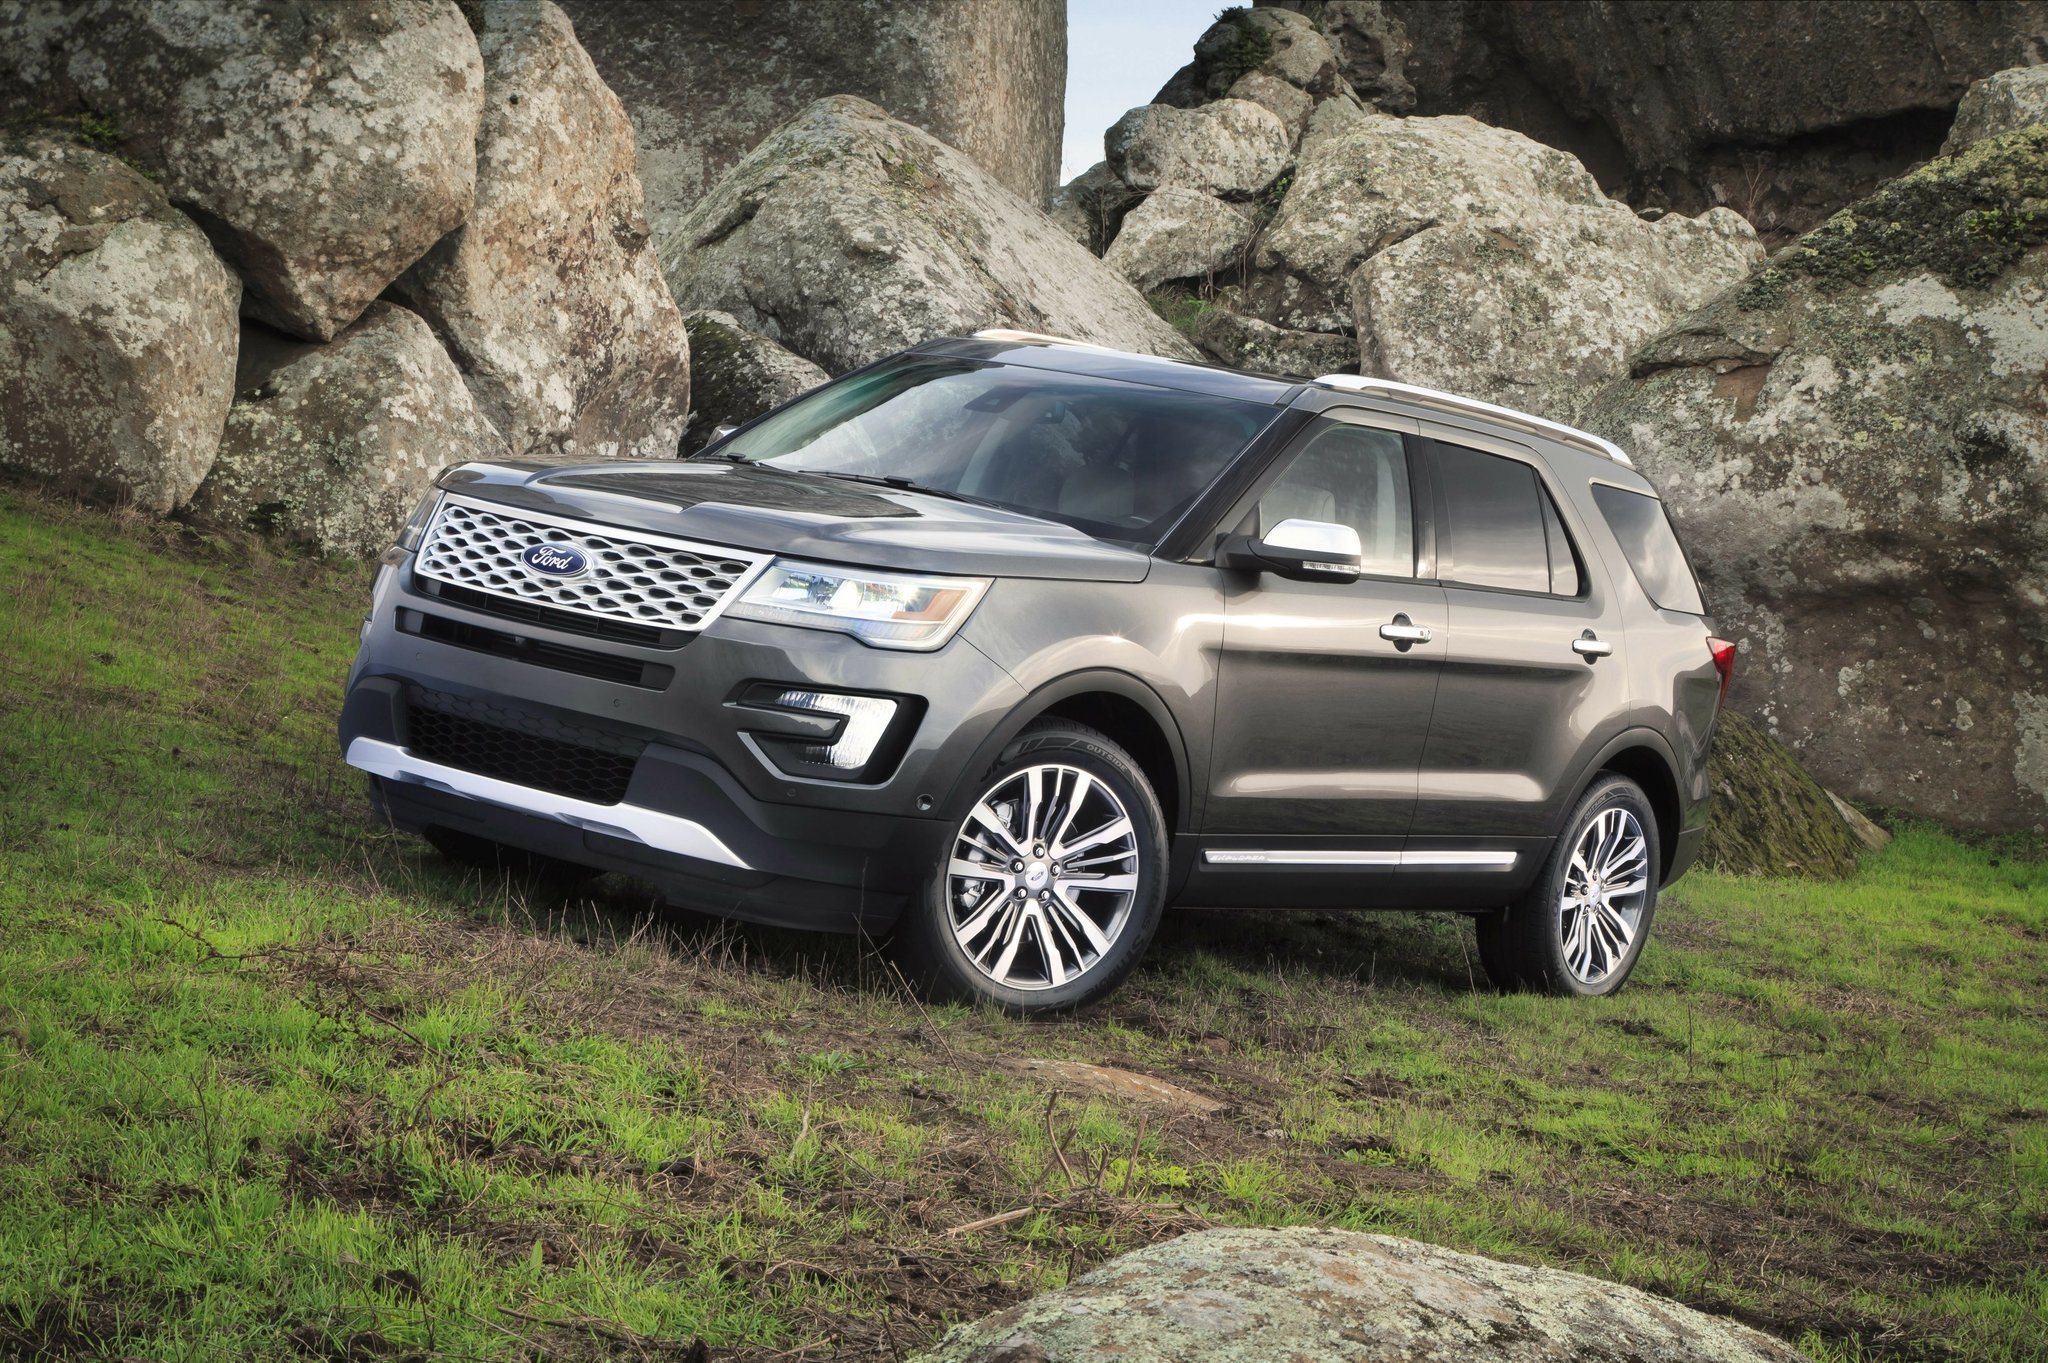 Luxury name of game in Ford Explorer Platinum model - The San Diego Union-Tribune & Luxury name of game in Ford Explorer Platinum model - The San ... markmcfarlin.com